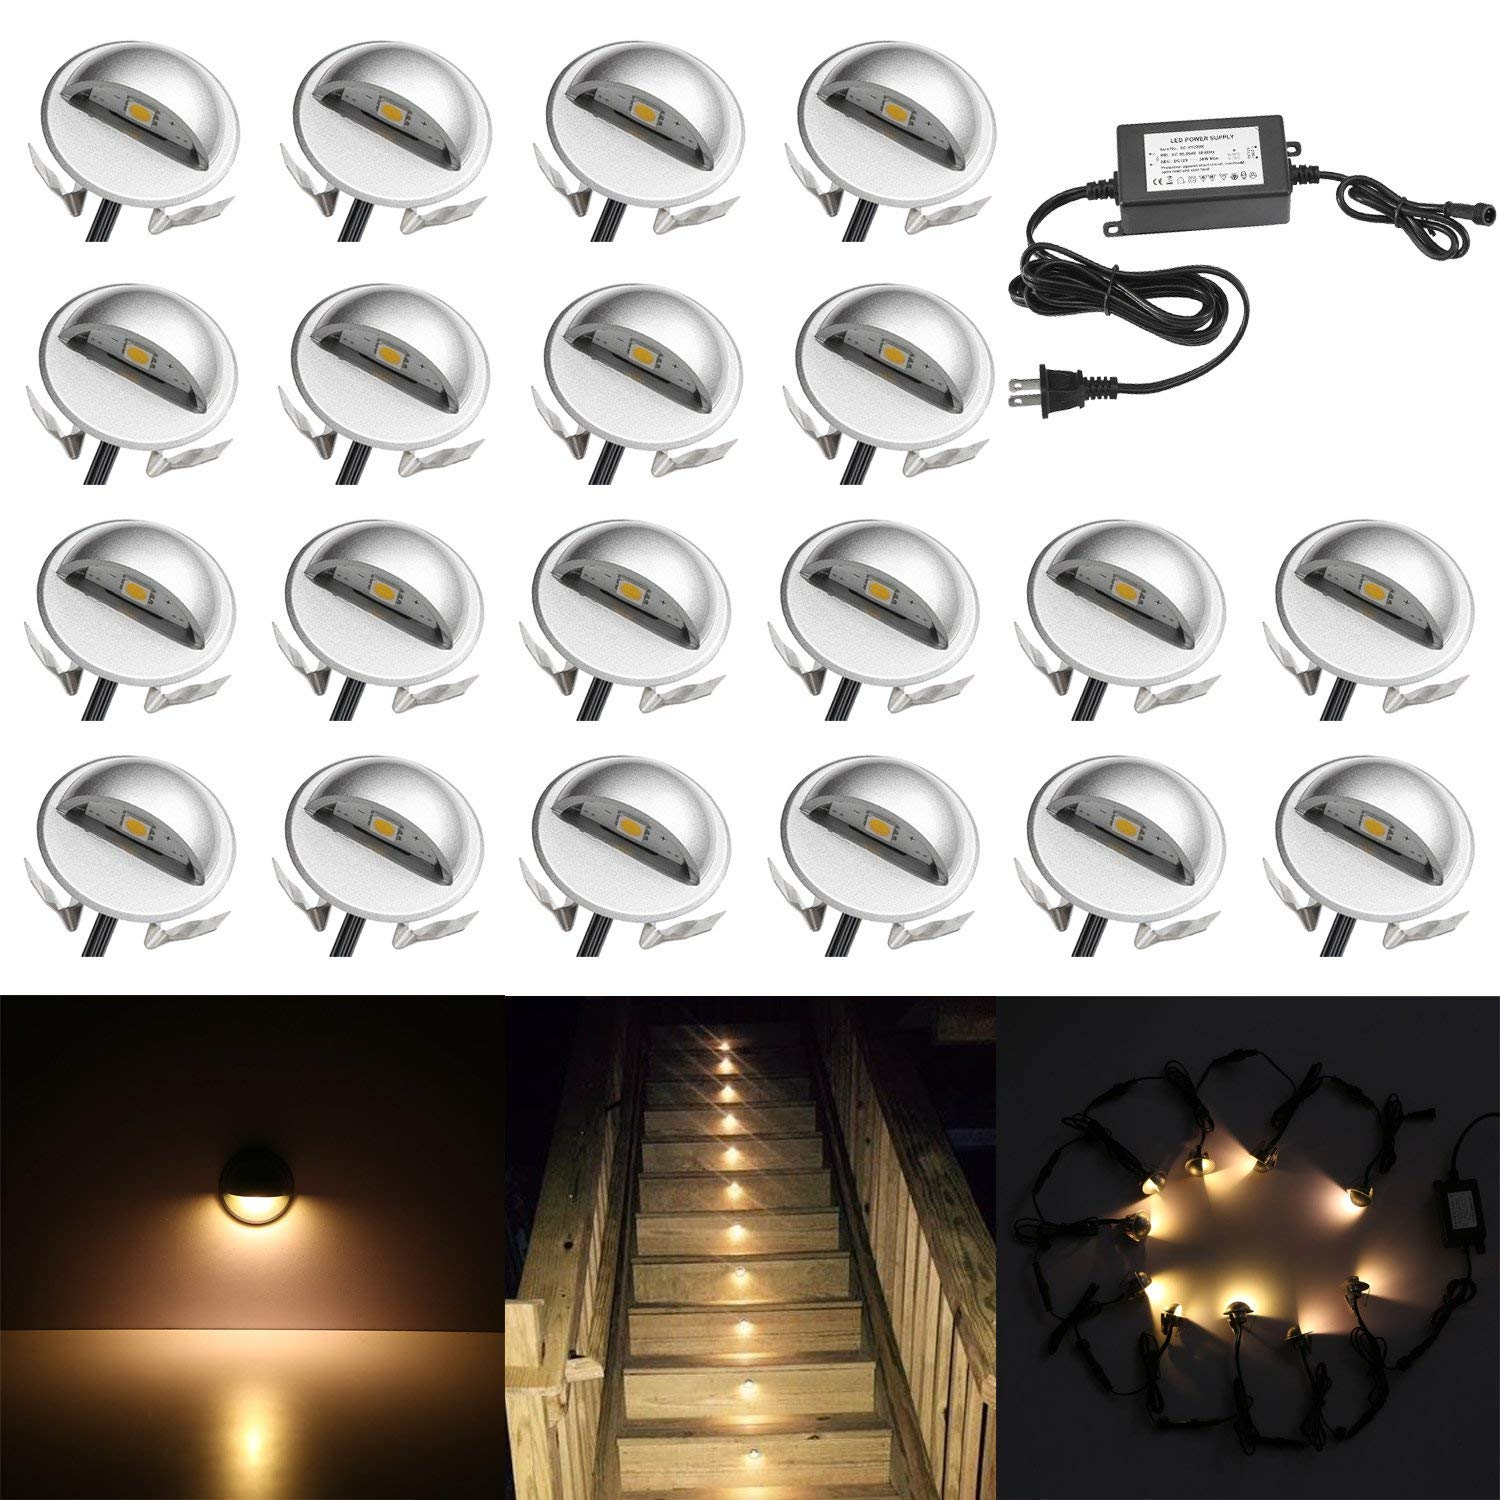 QACA 20 Pack LED Stair Lights Kit Low Voltage Landscape Lights Waterproof IP65 Outdoor 1-2/5'' Recessed Wood LED Deck Lighting Yard Garden Patio Step Landscape Pathway Decor Lamps, Warm White